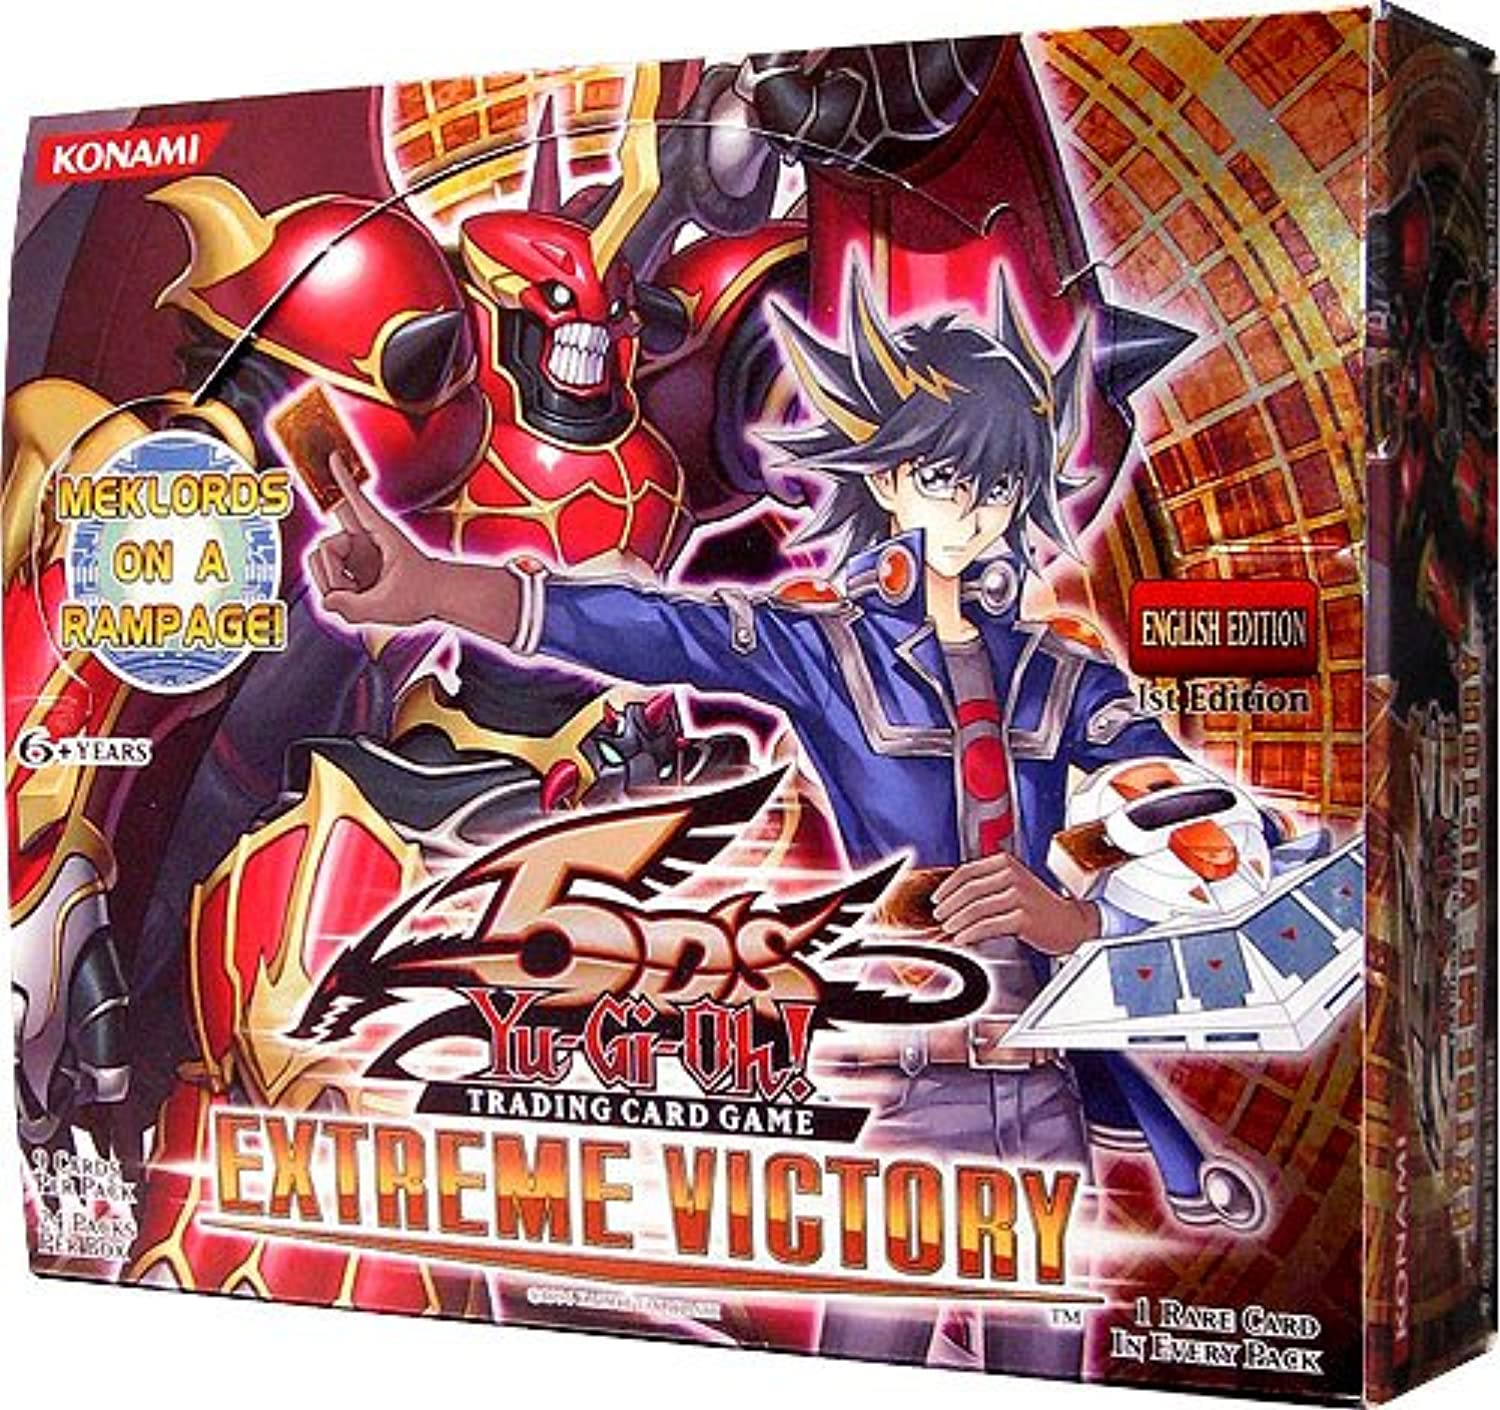 YuGiOh 5Ds Extreme Victory Booster Box 24 Packs [Toy] B004Z2OHUS Preiszugeständnisse | Moderne Muster